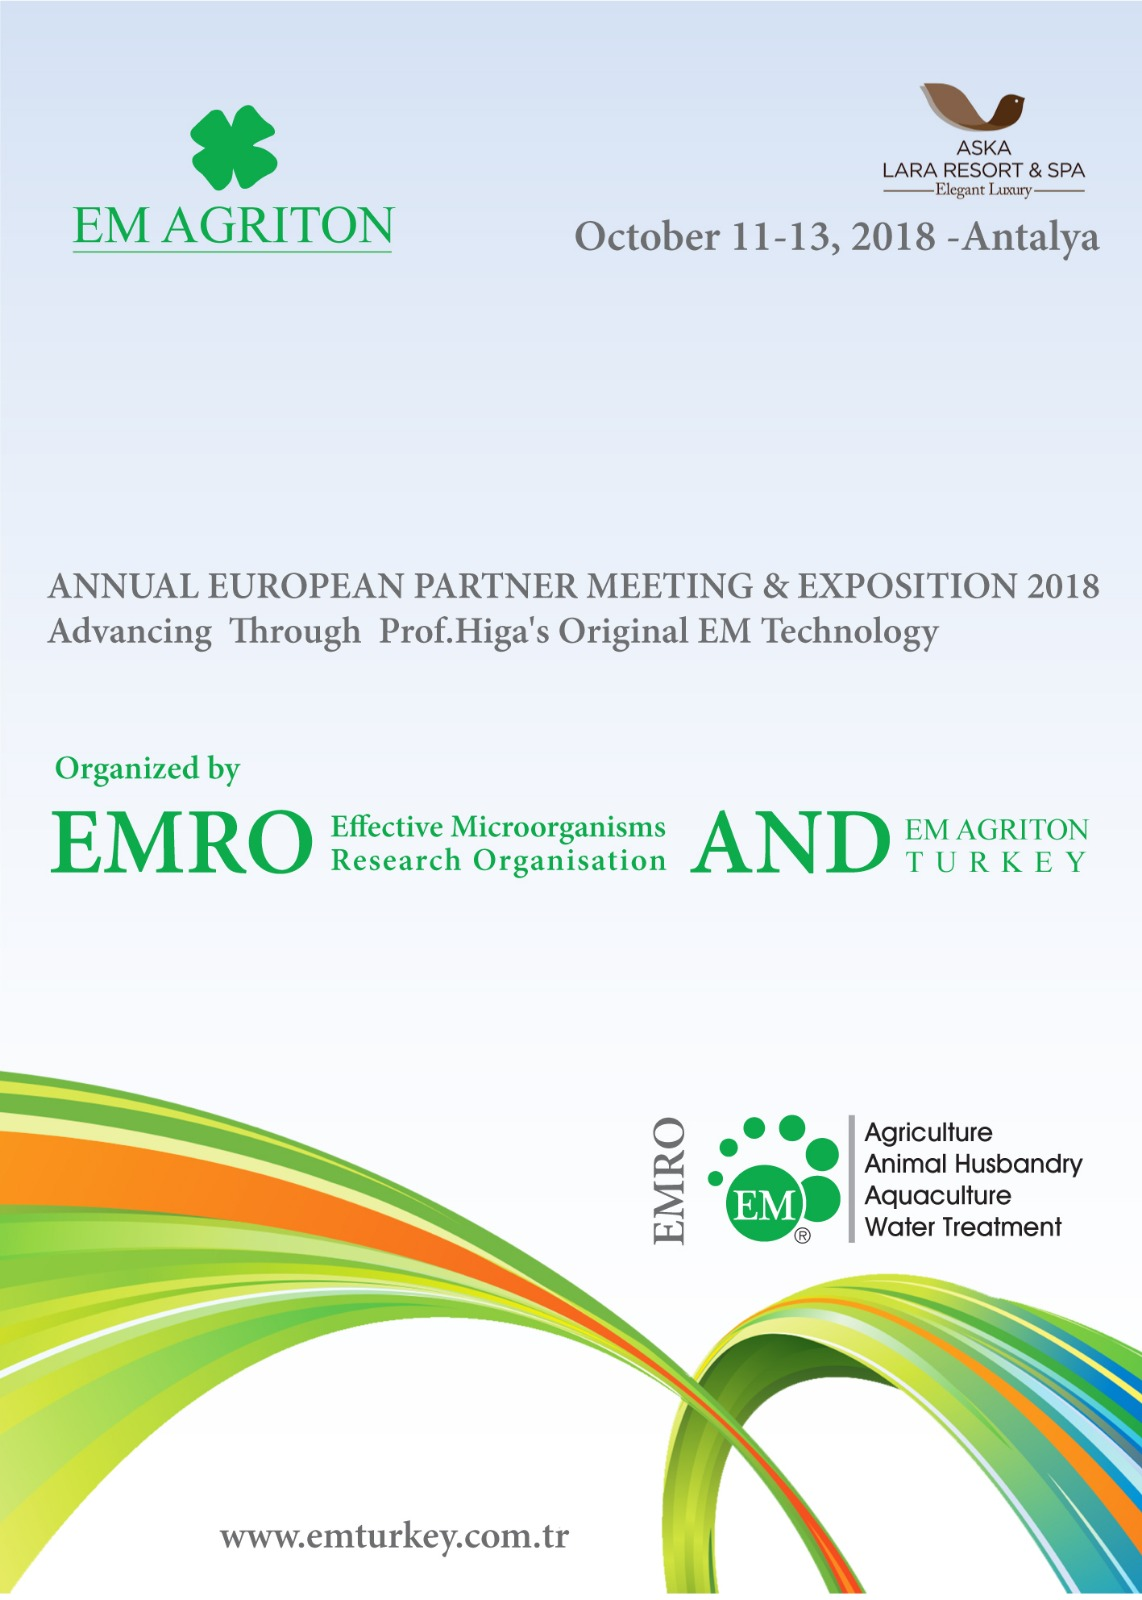 Annual European Partner Meeting & Exposition 2018